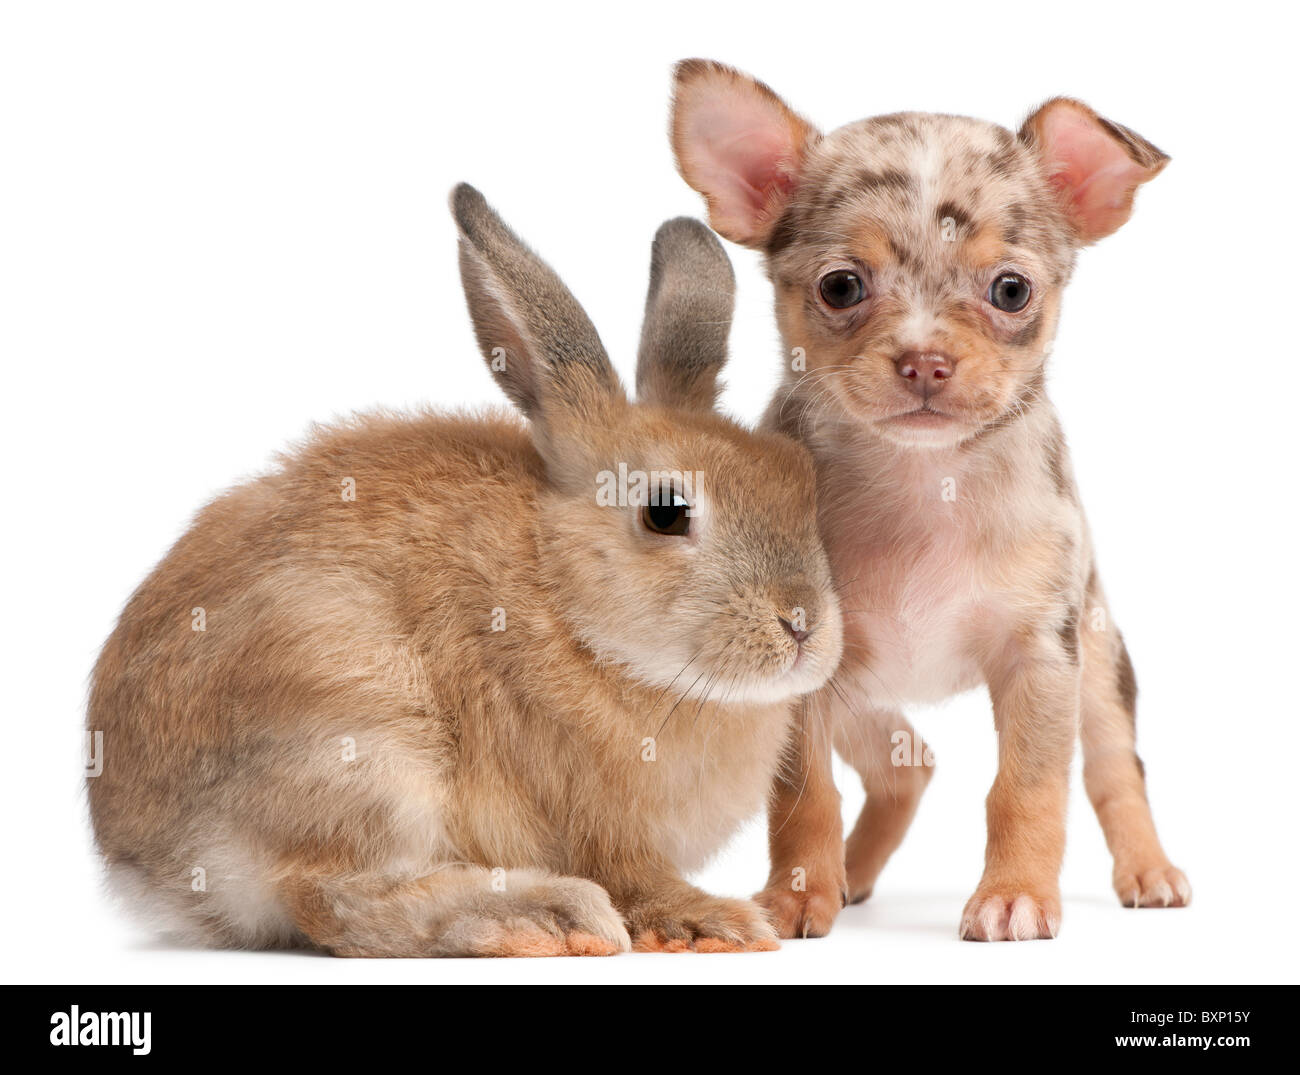 Chihuahua Puppy interacting with a rabbit in front of white background - Stock Image